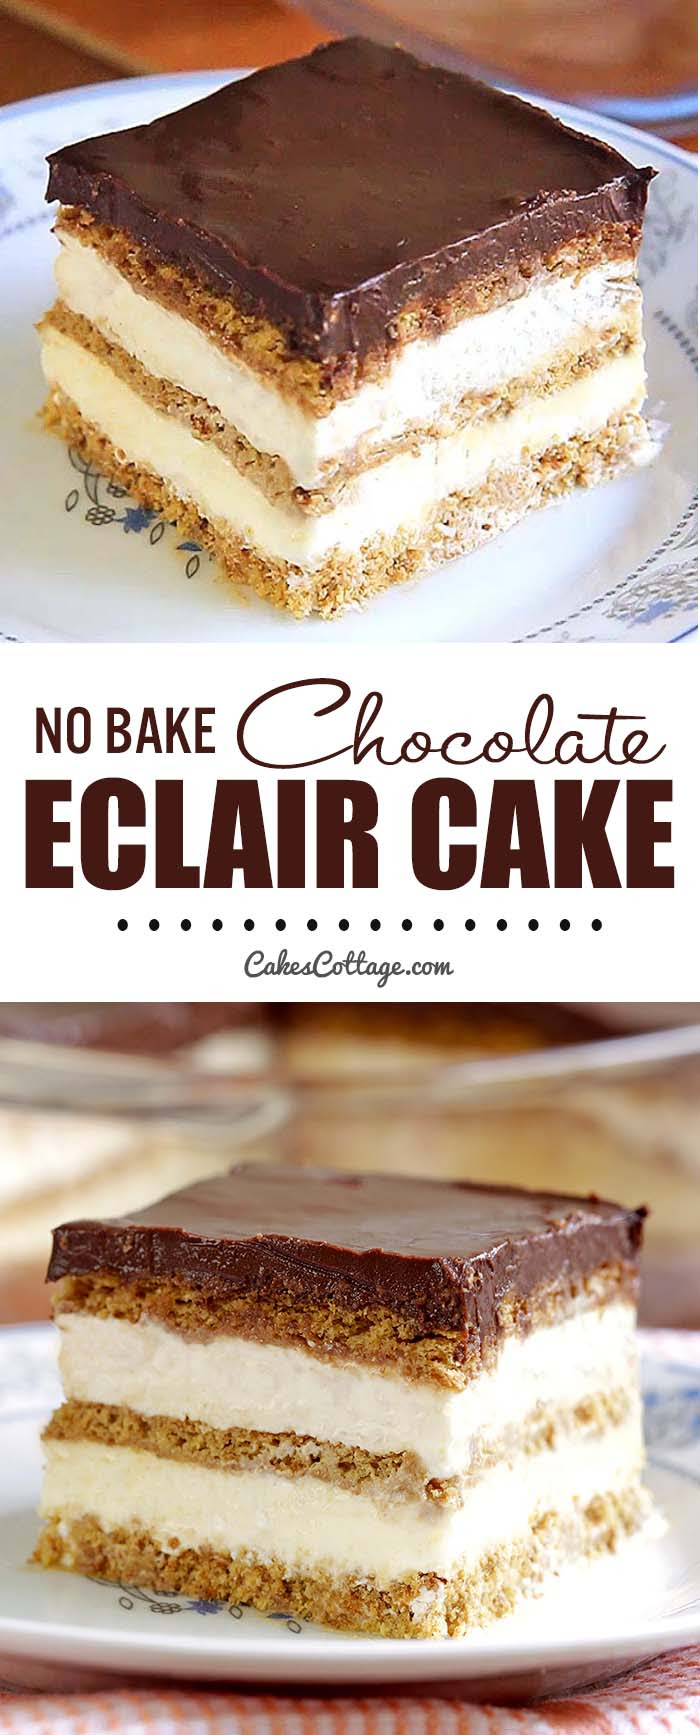 No Bake Chocolate Eclair Icebox Cake - Cakescottage